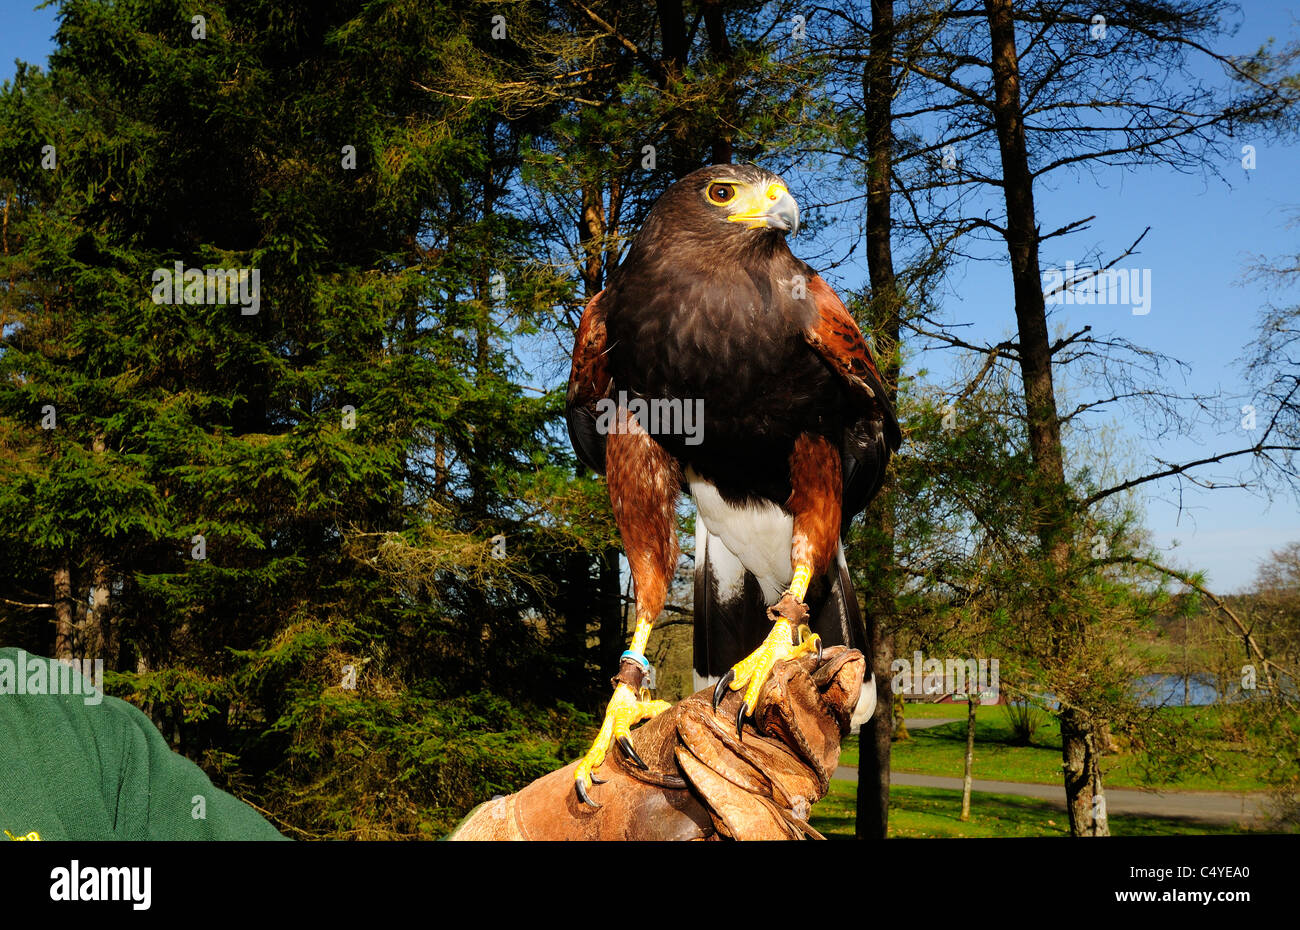 Monty 'the HarrisHawk tethered to the  keeper's glove at the  Birds of Prey Center   Kielderwater and Forest - Stock Image